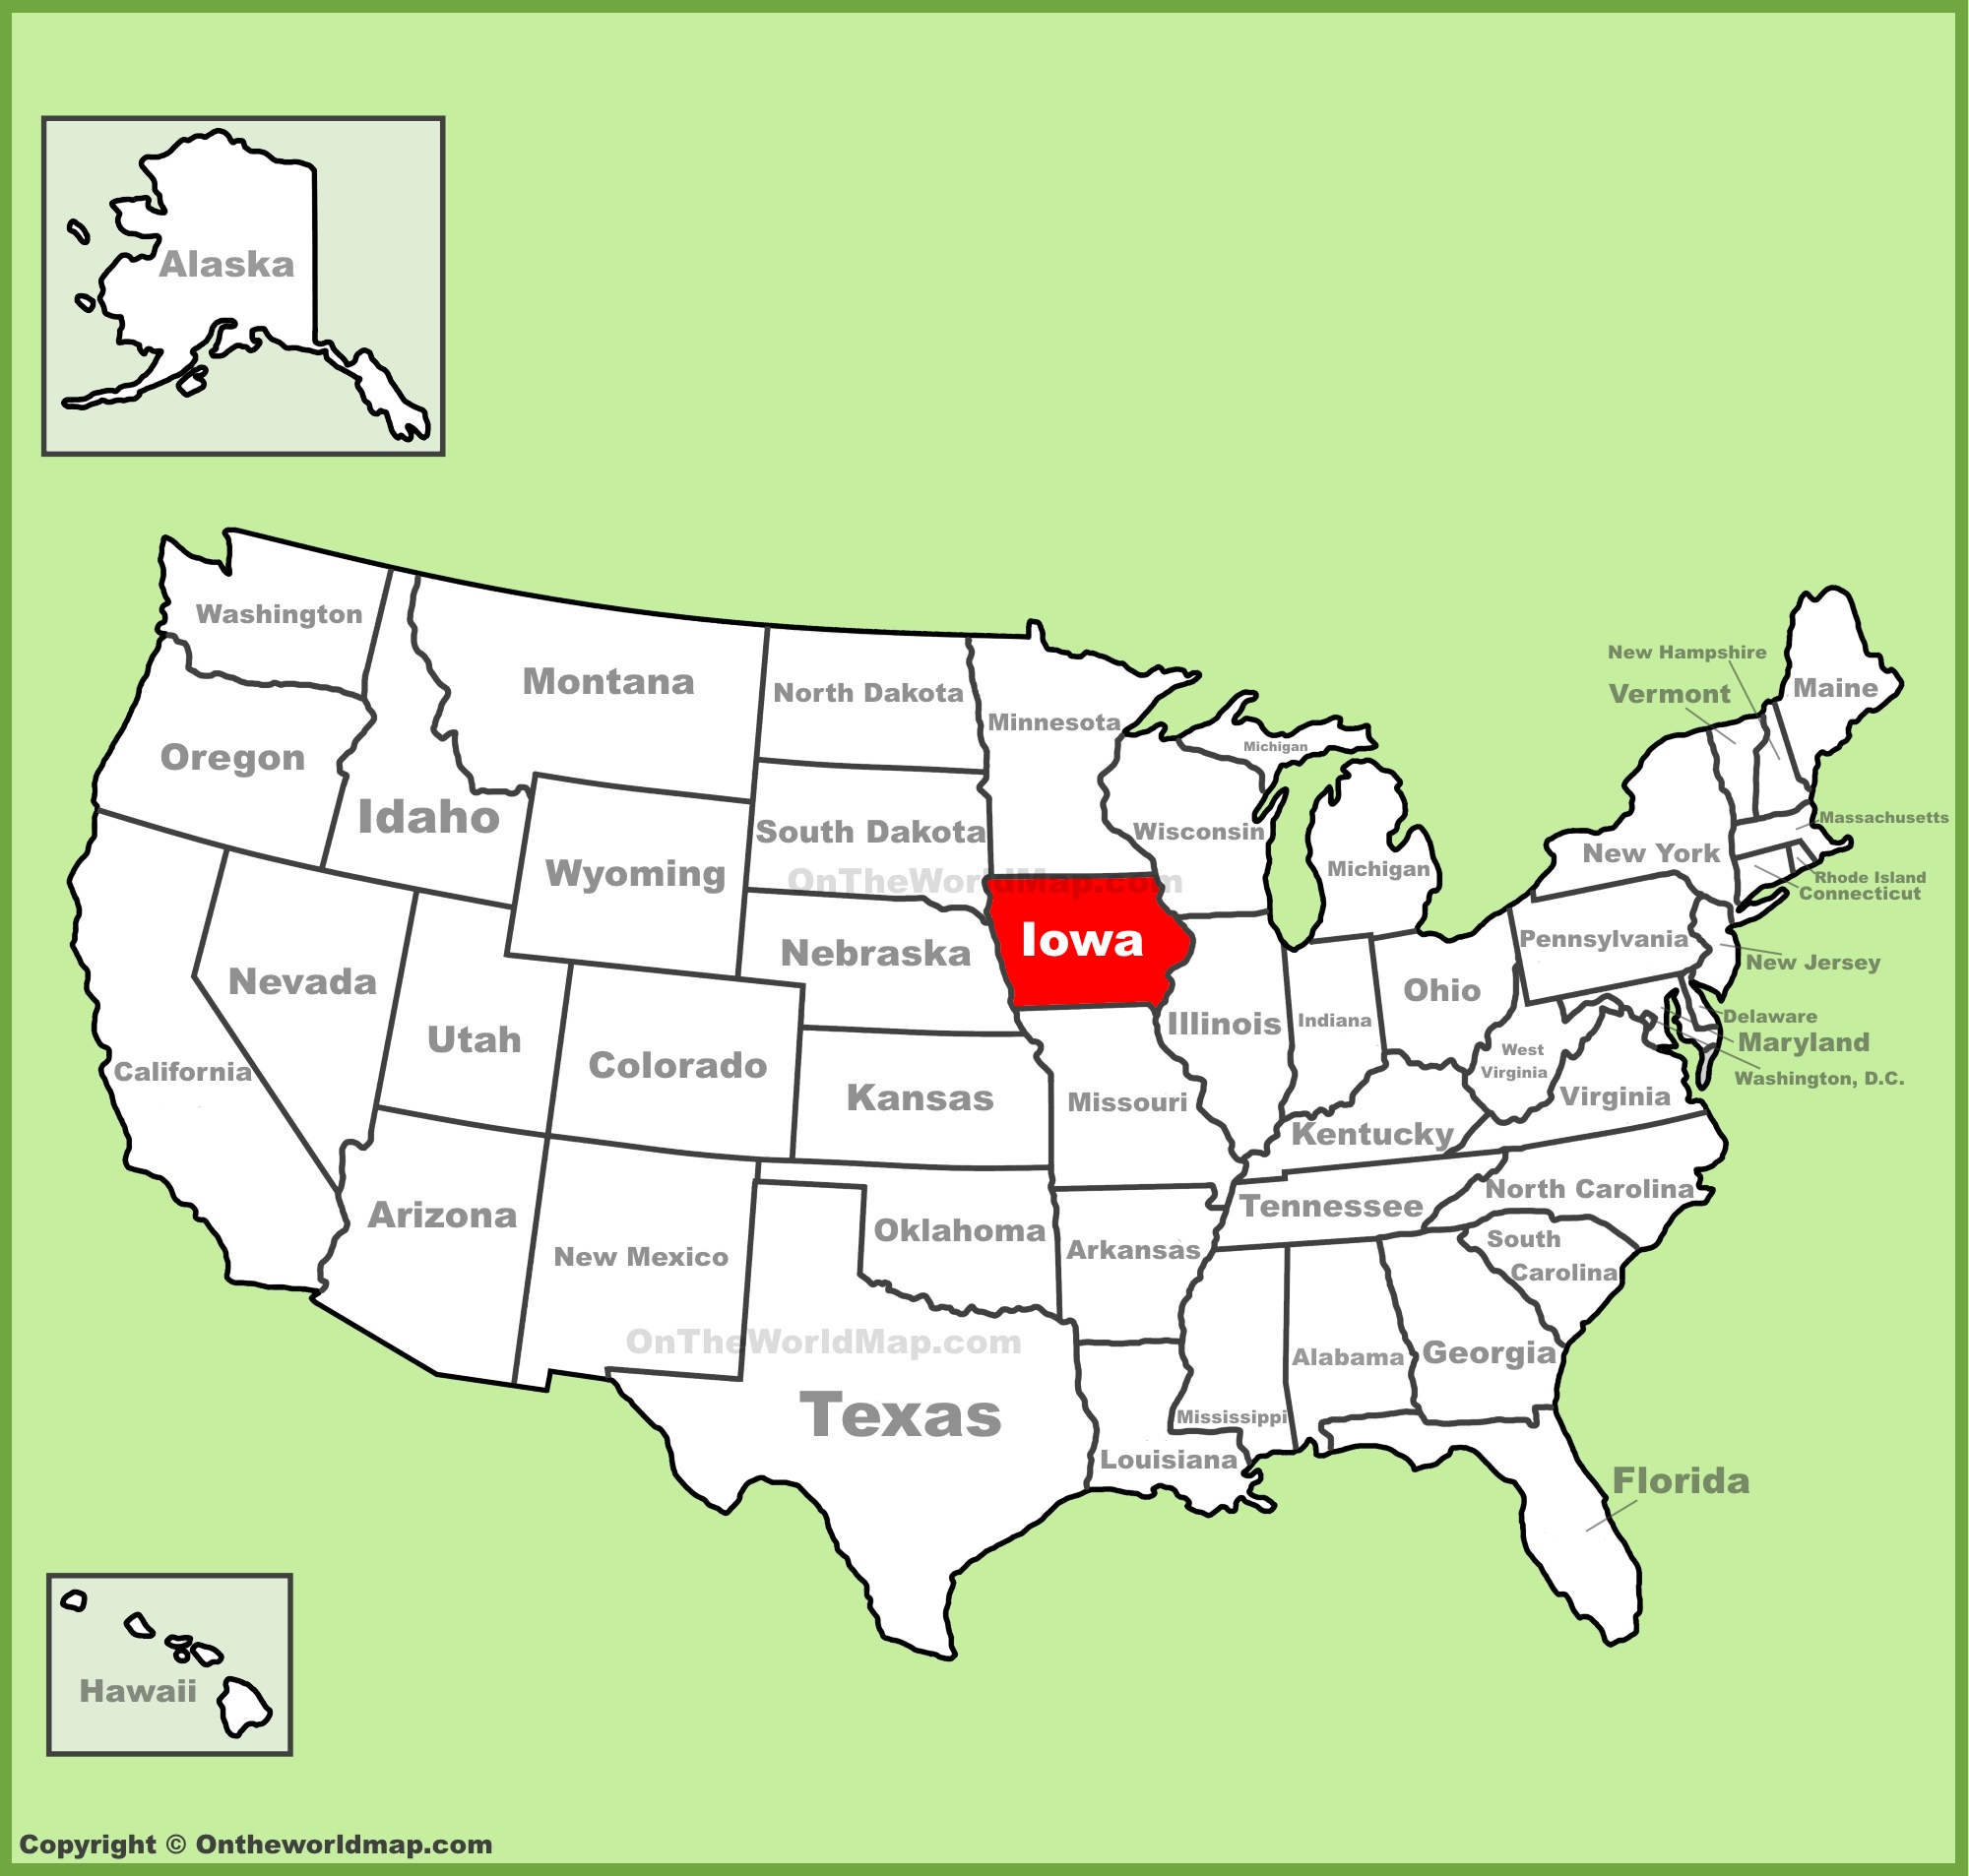 Iowa State Maps USA Maps Of Iowa IA - Map of iowa